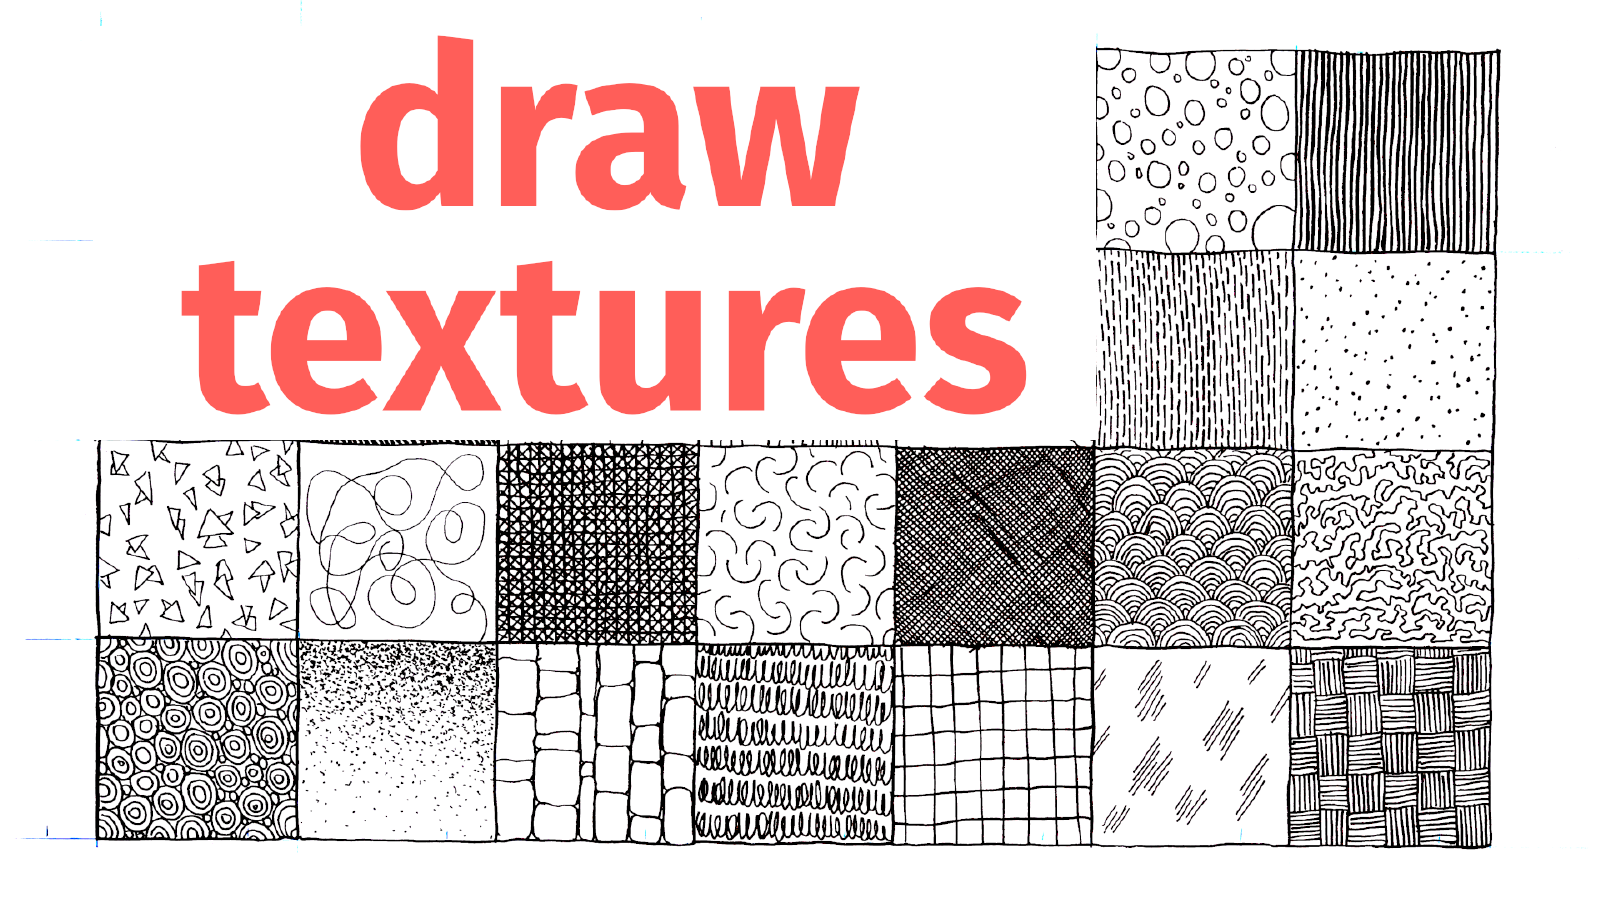 Slide image for the practice drawing textures exercise